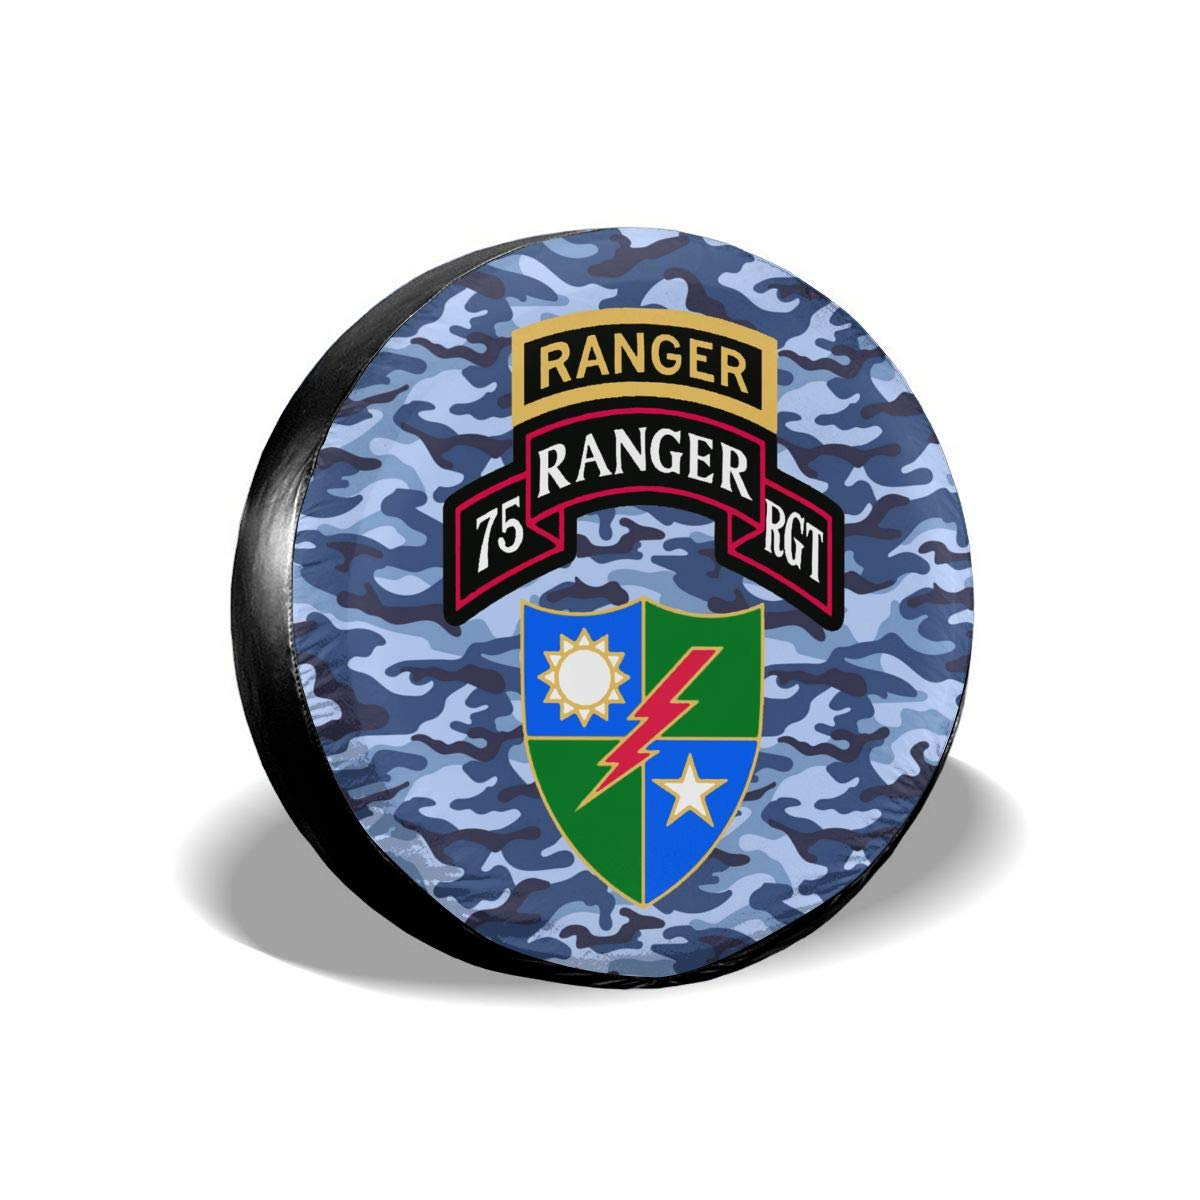 GSNWFG Rangers Creed US Army Rangers Cars Spare Tire Cover Cutomobile Tire Cover Tyre Size 14 15 16 17 18 Inch